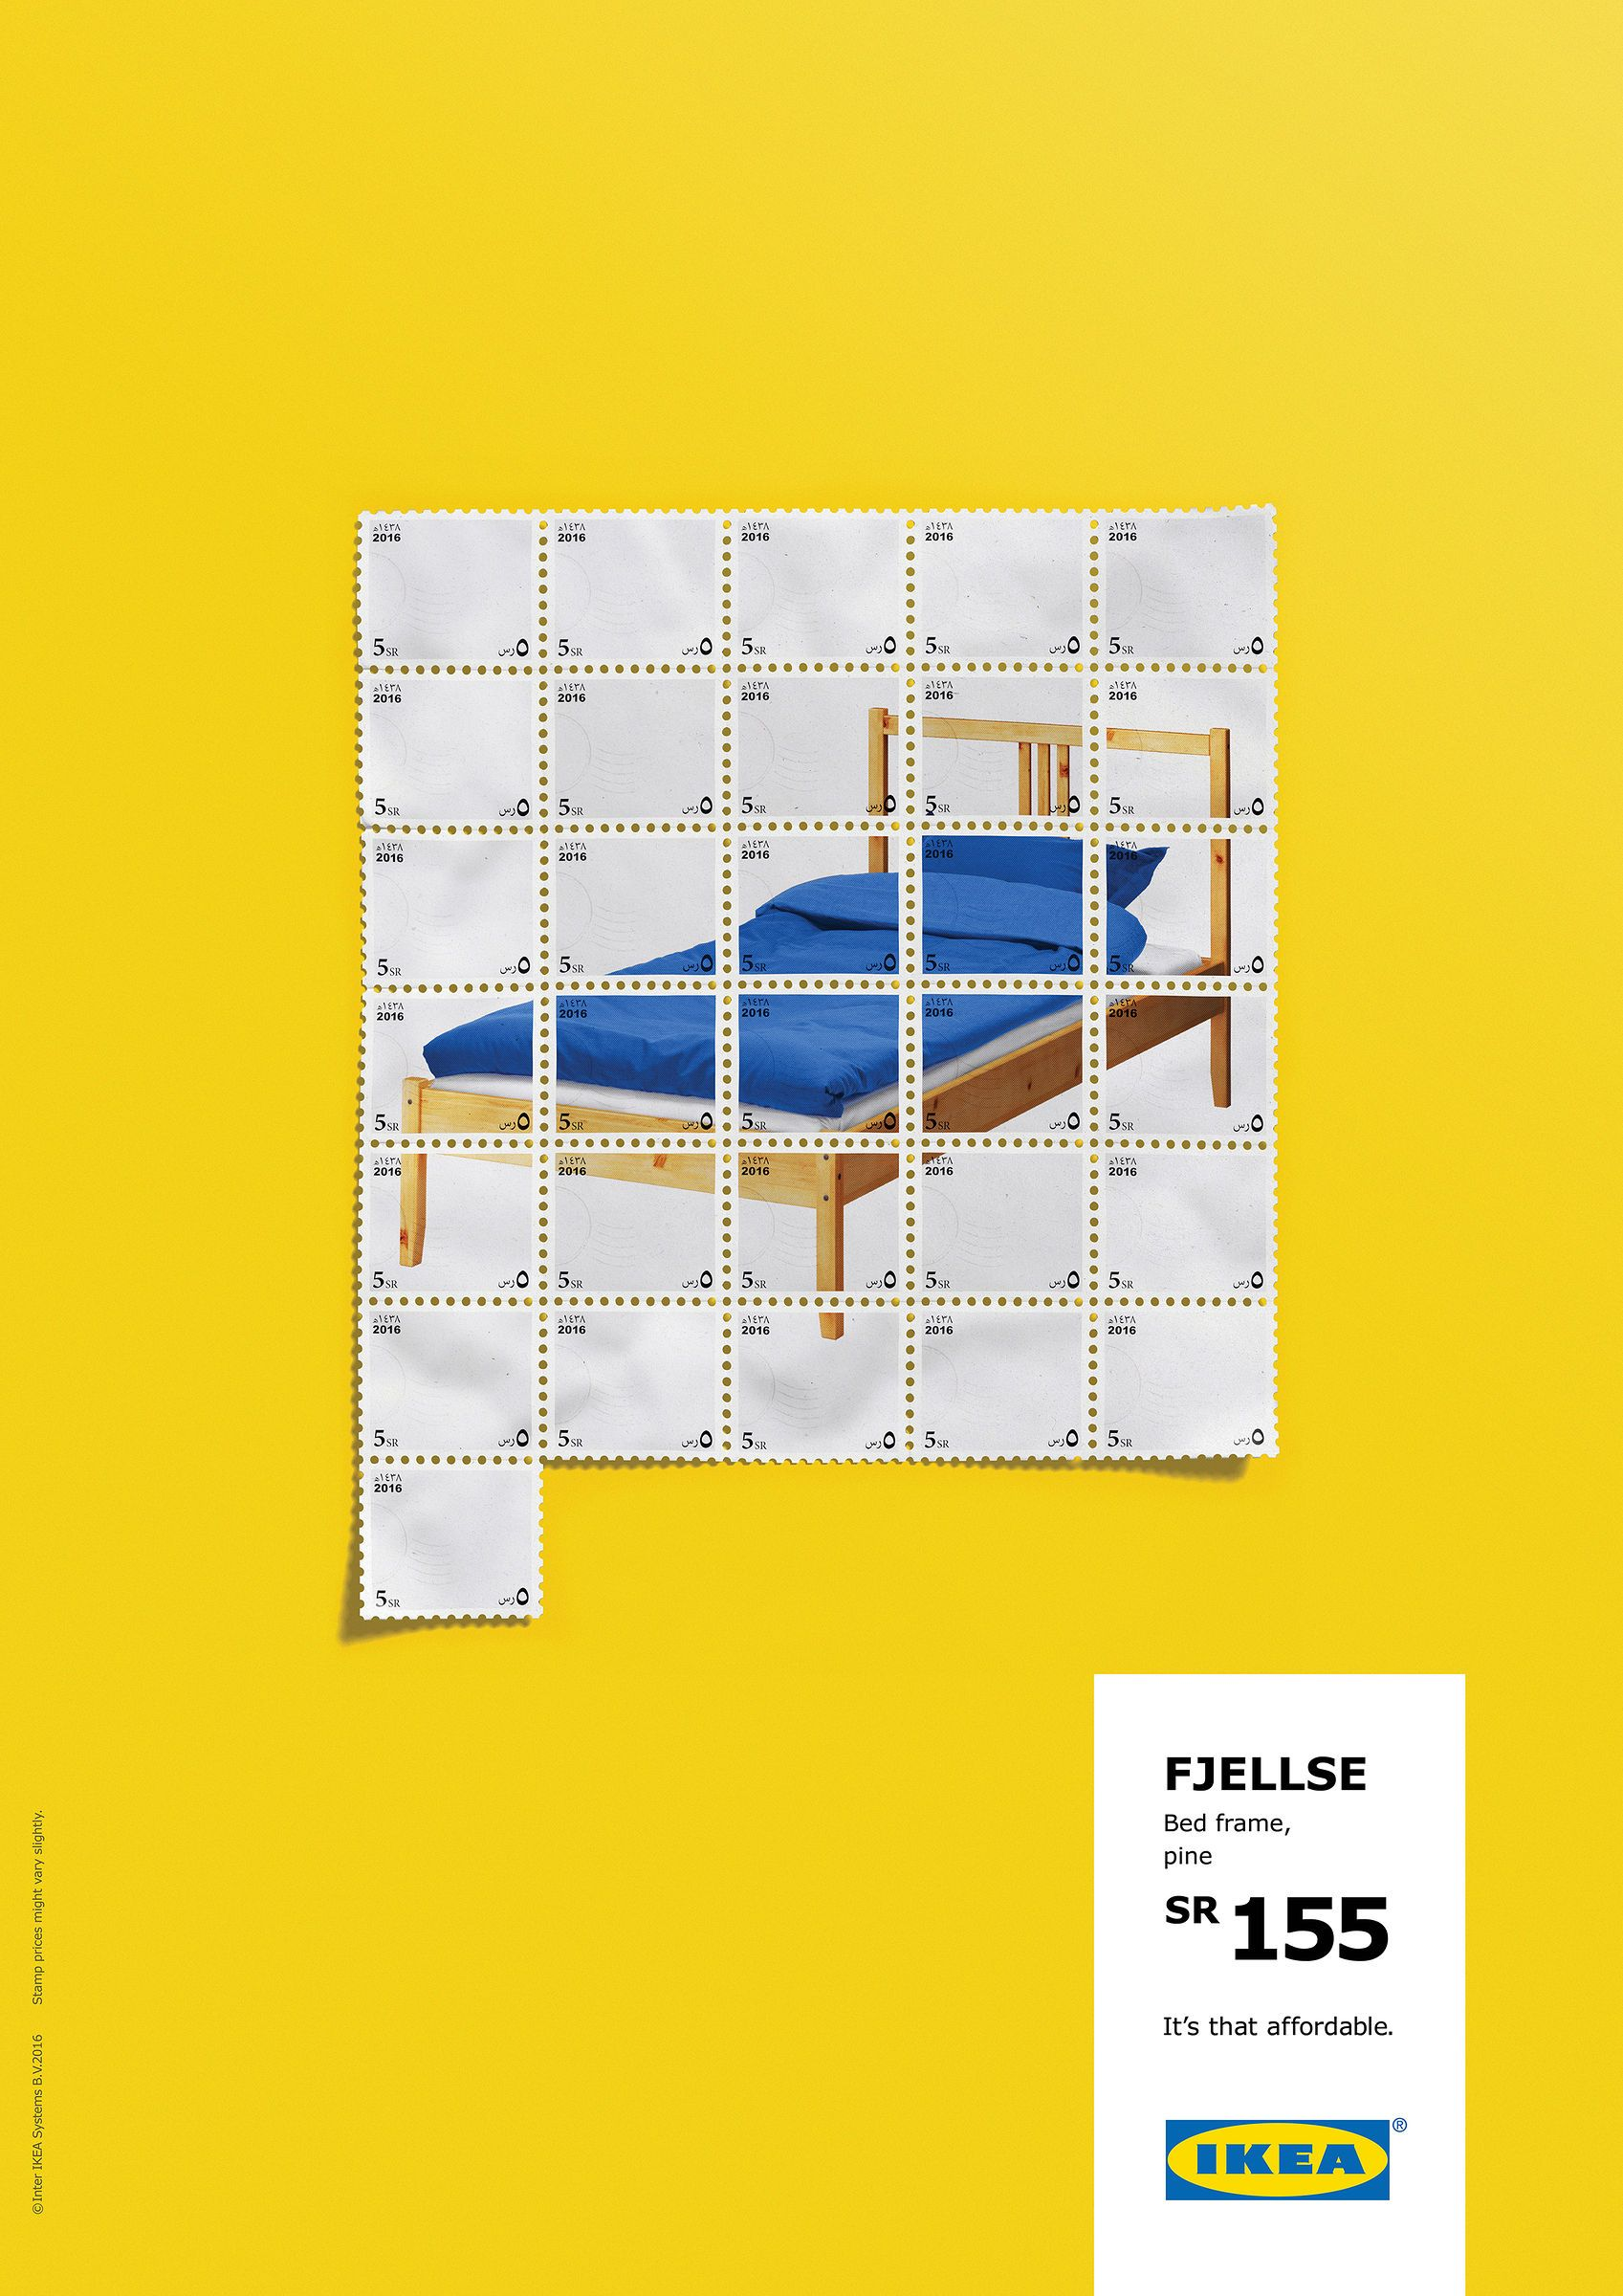 Its that affordable bed ikea furniture colourful stamps poster its that affordable bed ikea furniture colourful stamps poster advertising campaign award winning outdoor advertising dad gumiabroncs Images